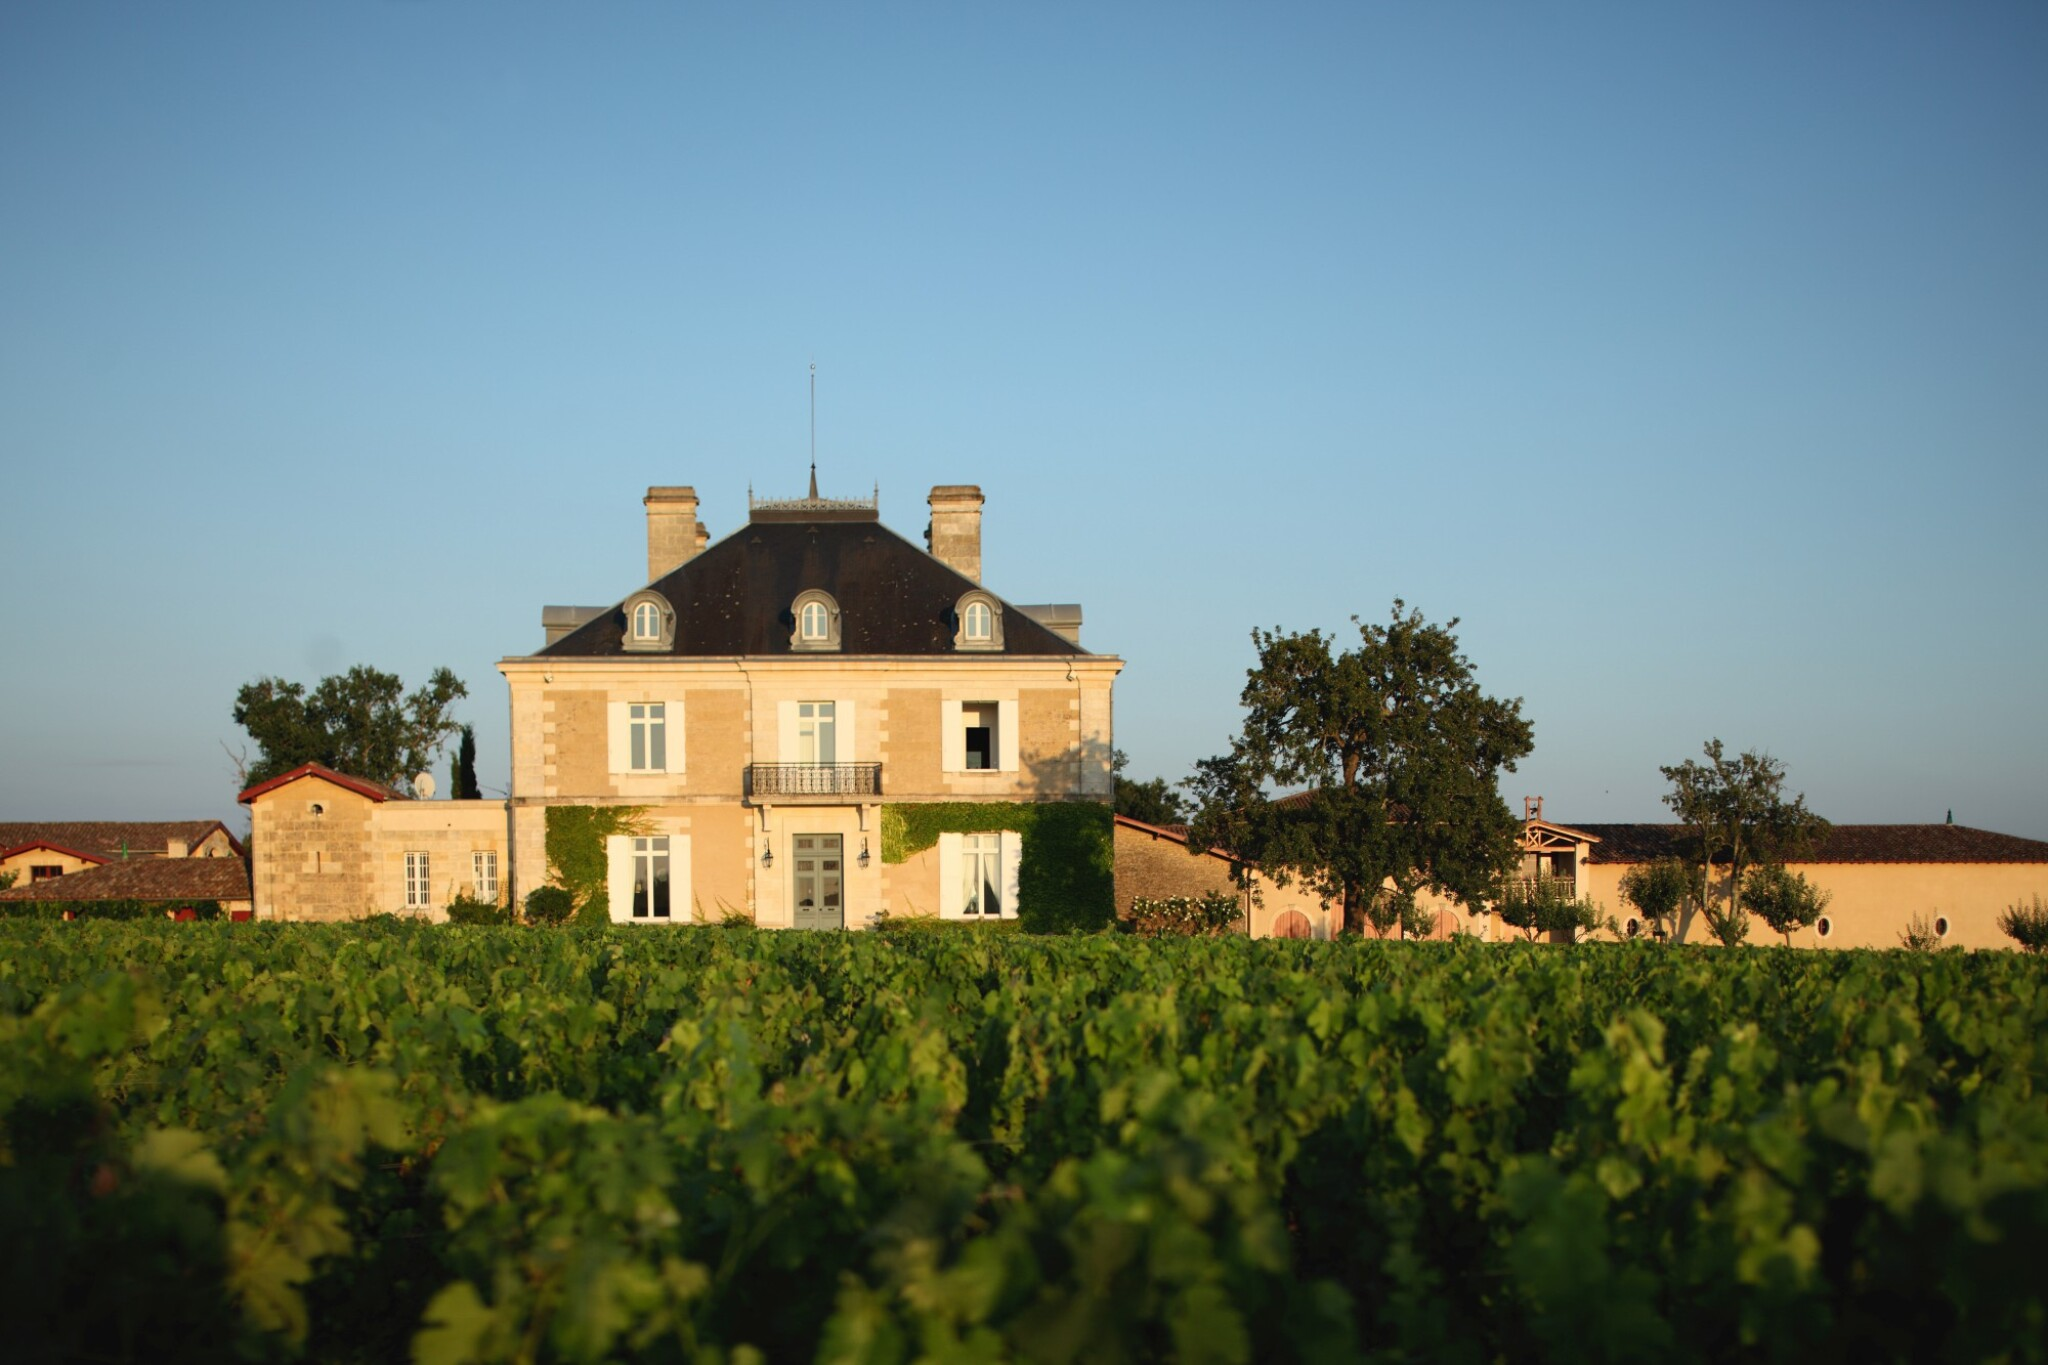 View 1 of Lot 16. HAUT-BAILLY, AN IMMERSION: 1 X 3 LITRE HAUT-BAILLY 2000, WITH TASTING, LUNCH AT THE CHÂTEAU & OVERNIGHT STAY AT CHÂTEAU LE PAPE .